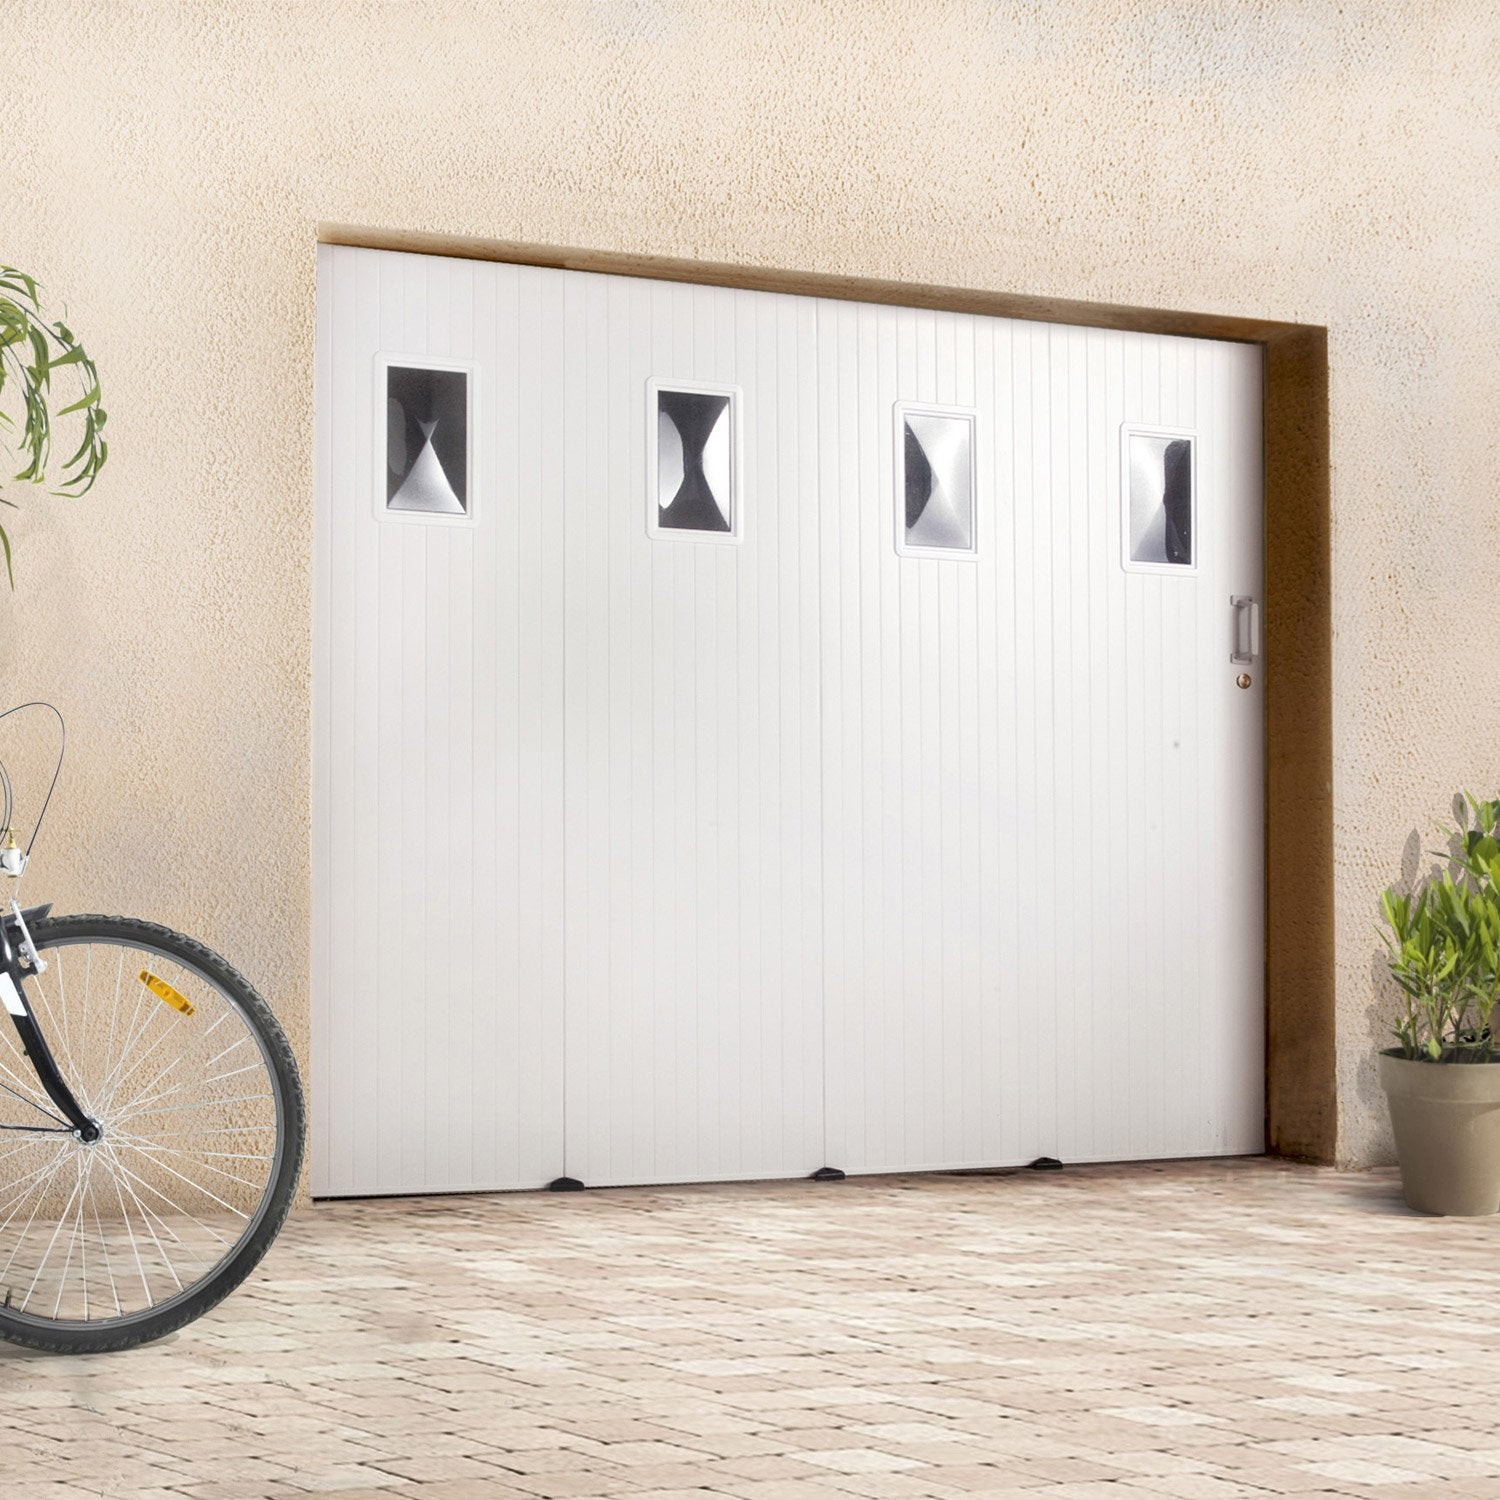 Pose d 39 une porte de garage coulissante leroy merlin for Porte de garage avec pose